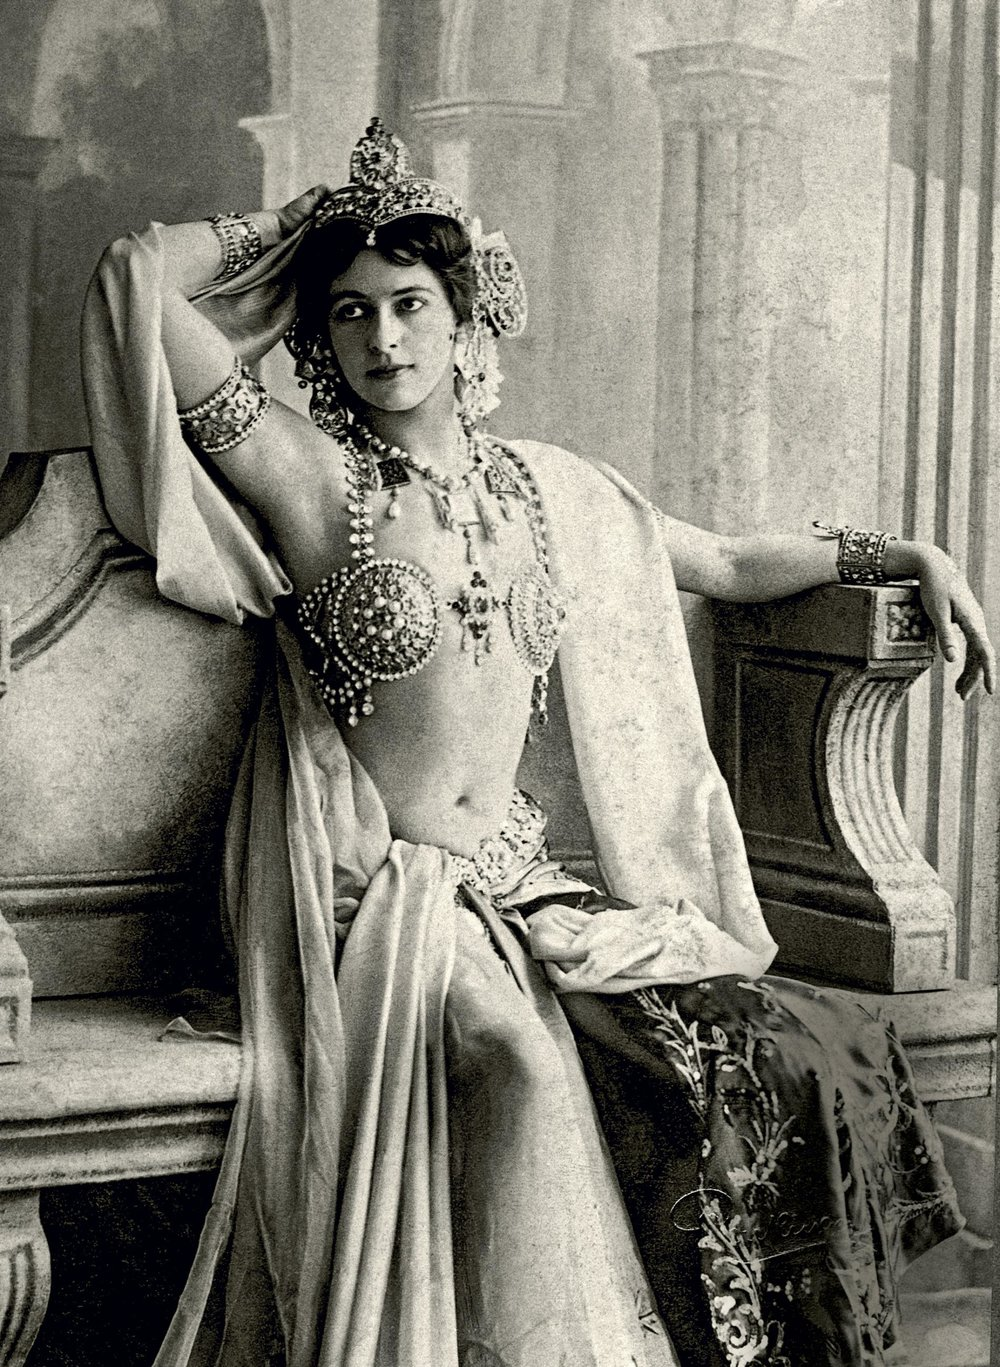 mata hari getty.jpg